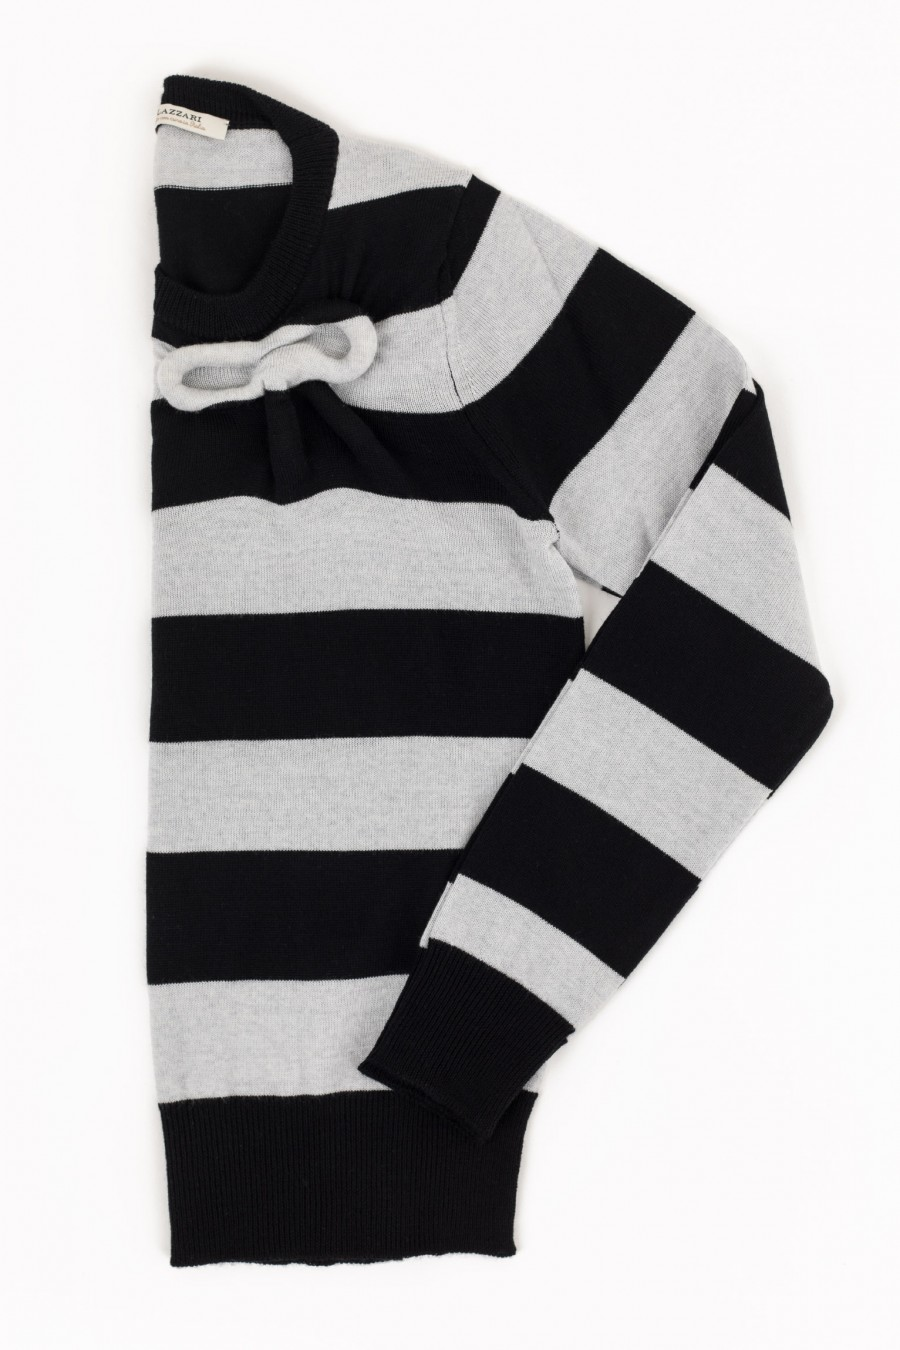 Black and stripy top